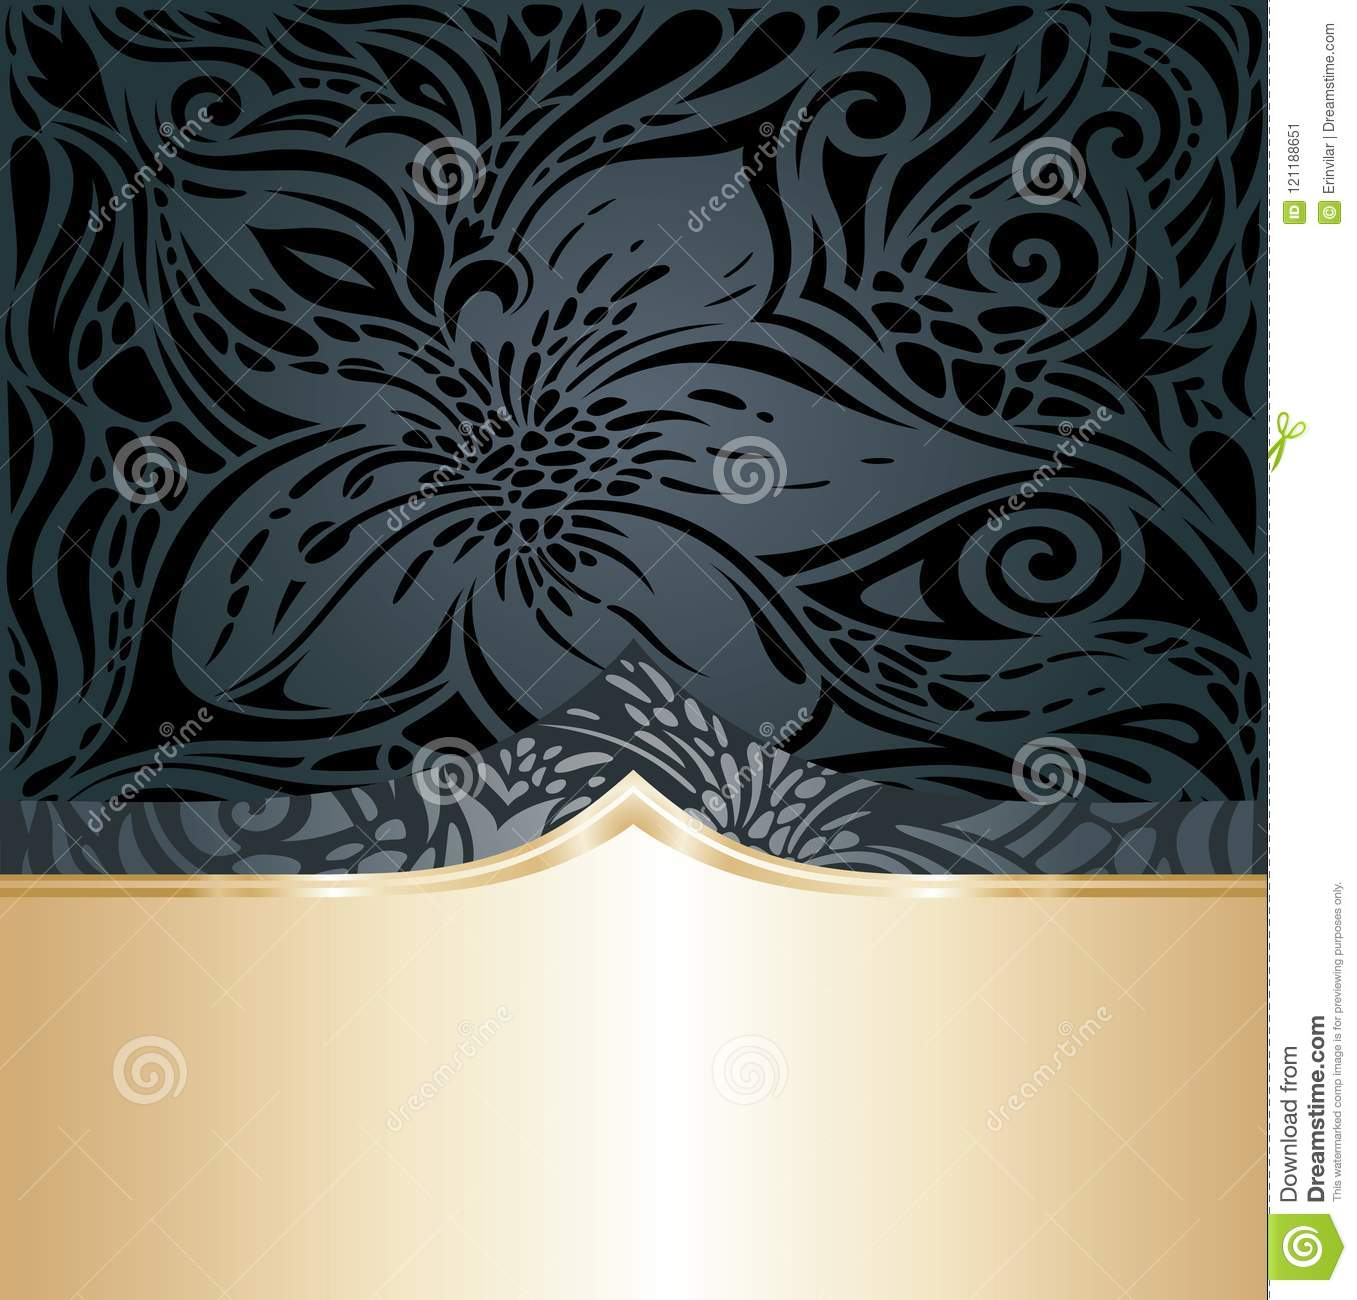 Decorative Black Gold Floral Luxury Wallpaper Background Trendy Fashion Design With Golden Copy Space